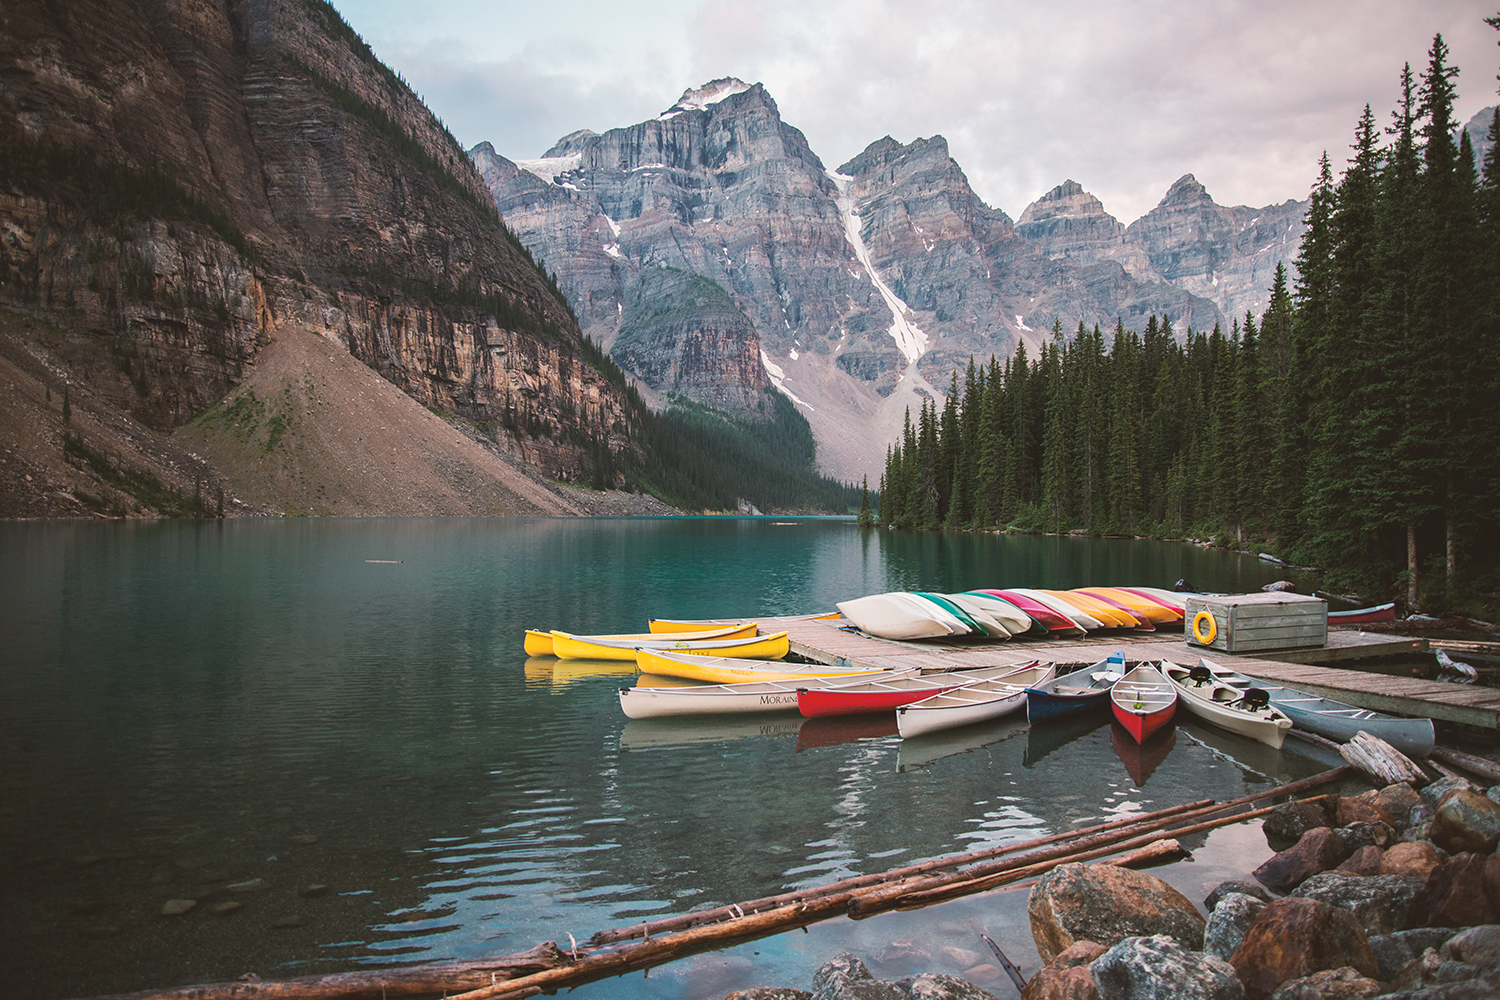 colorful canoes near a dock on a lake with mountains and trees in view